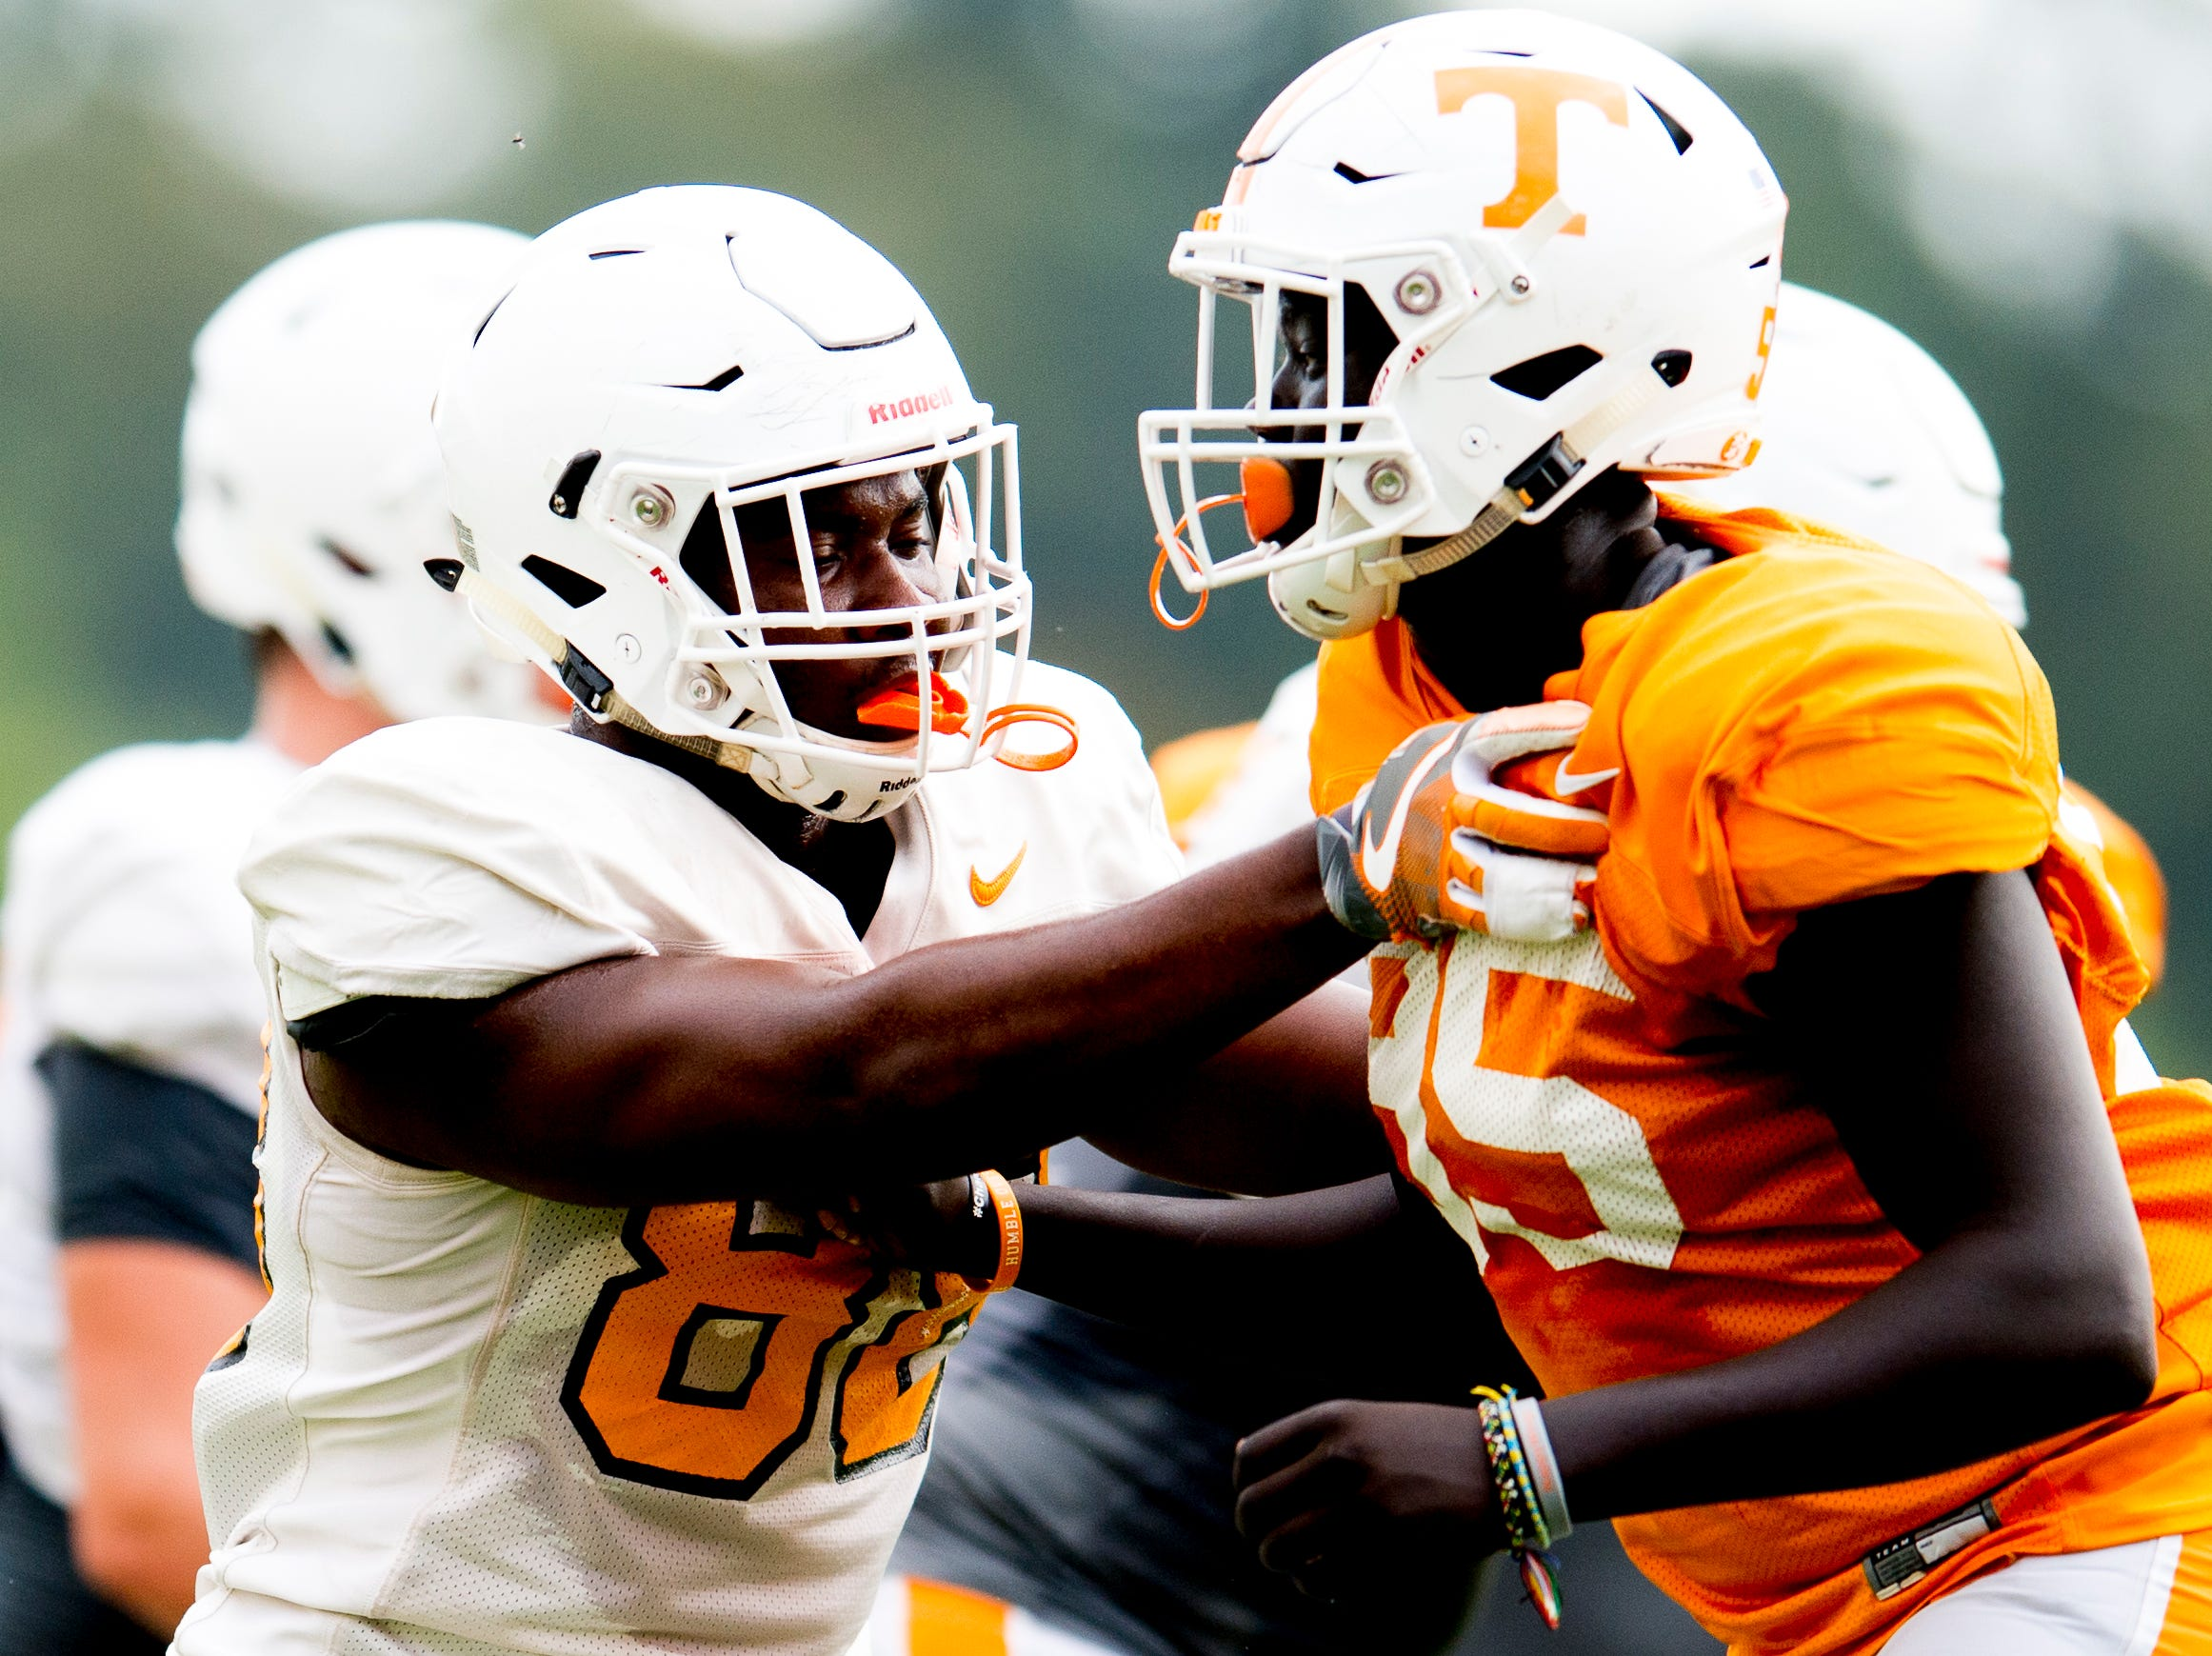 Tennessee tight end LaTrell Bumphus (88) and Tennessee wide receiver Cedric Tillman (85) drill together during Tennessee fall football practice at Haslam Field in Knoxville, Tennessee on Tuesday, October 9, 2018.